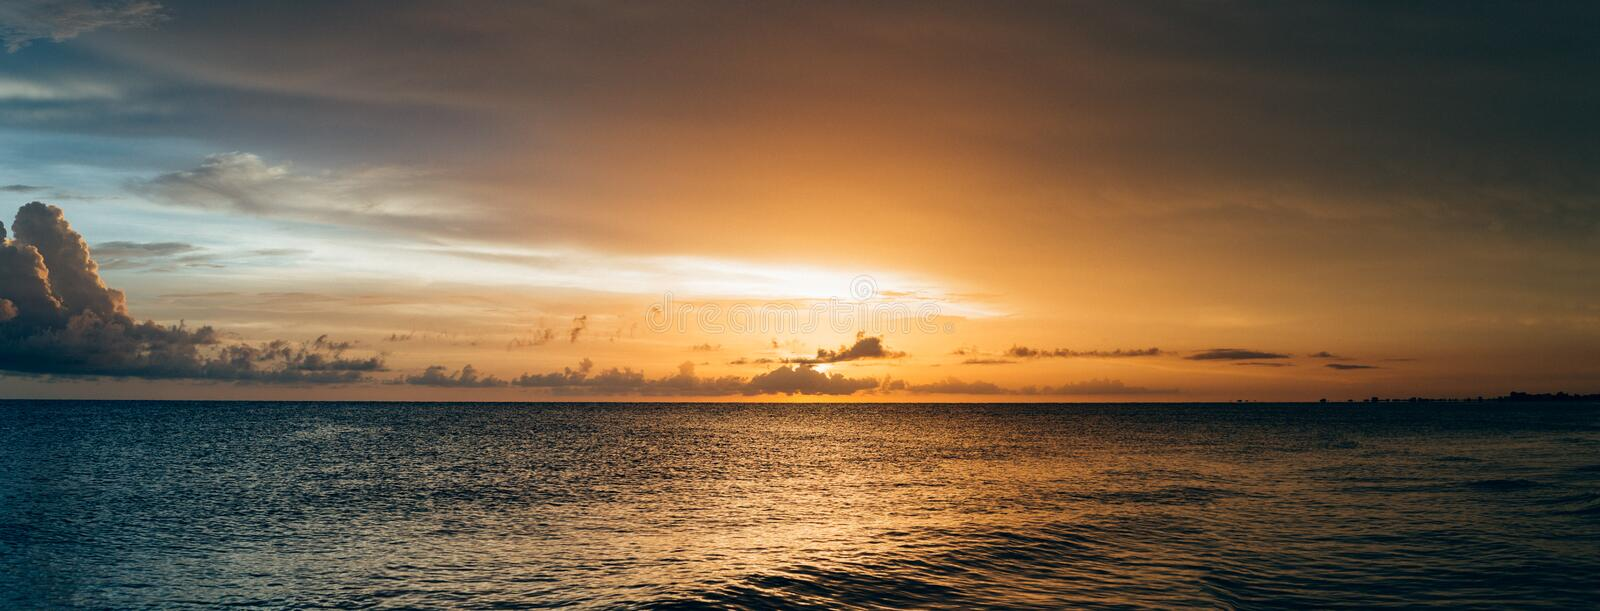 Scenery of Sea Water during Sunset stock image